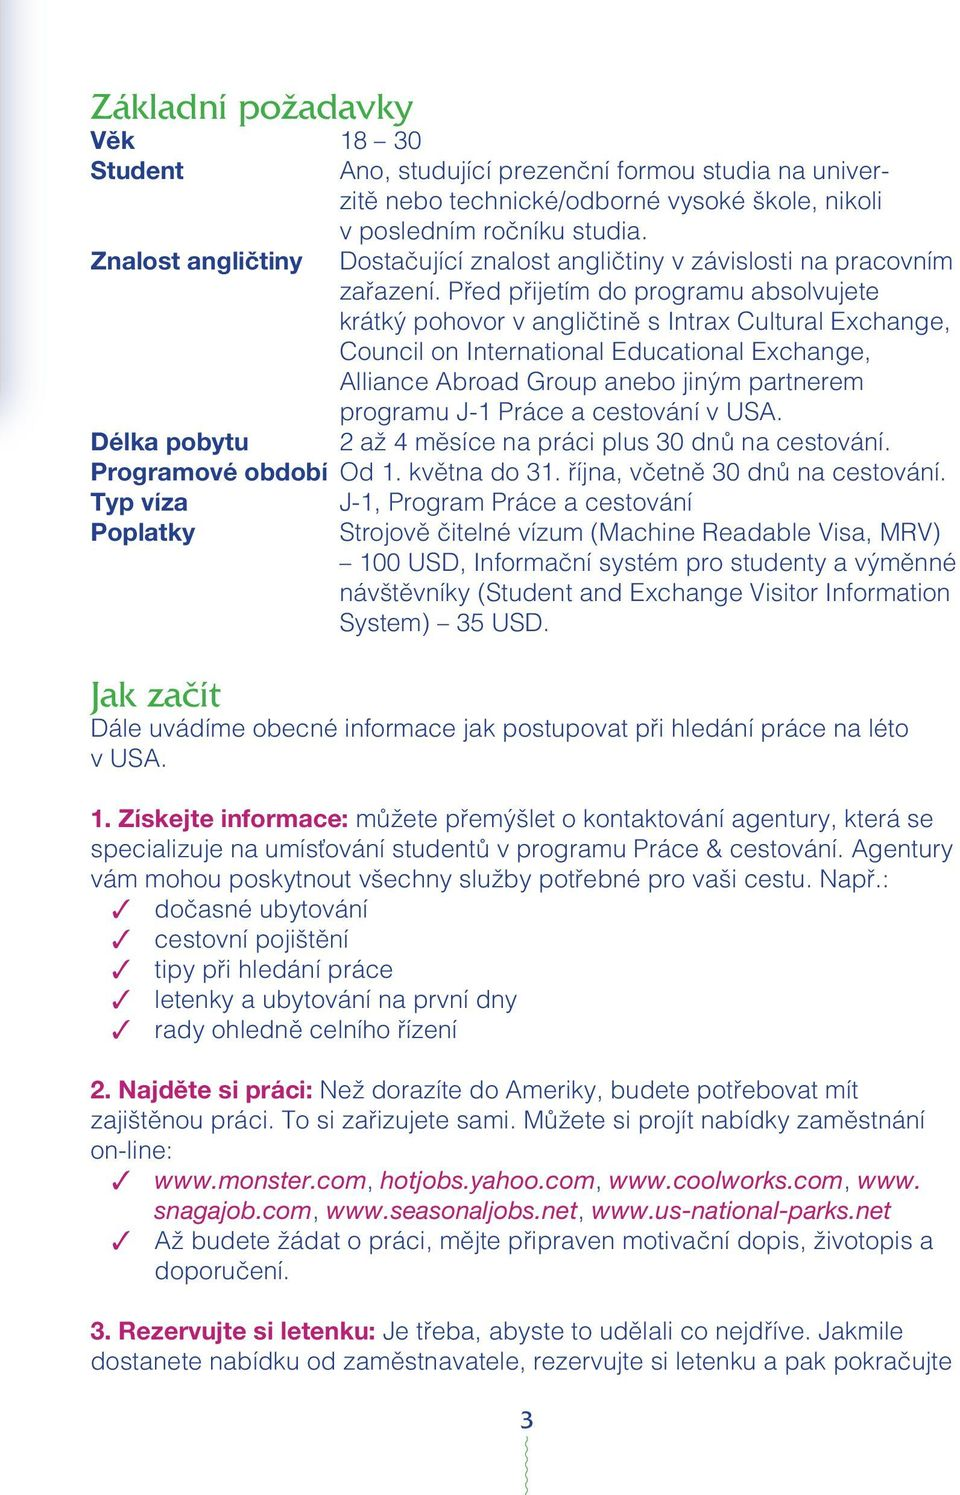 Pªed pªijetím do programu absolvujete krátkÿ pohovor v angli tinæ s Intrax Cultural Exchange, Council on International Educational Exchange, Alliance Abroad Group anebo jinÿm partnerem programu J-1